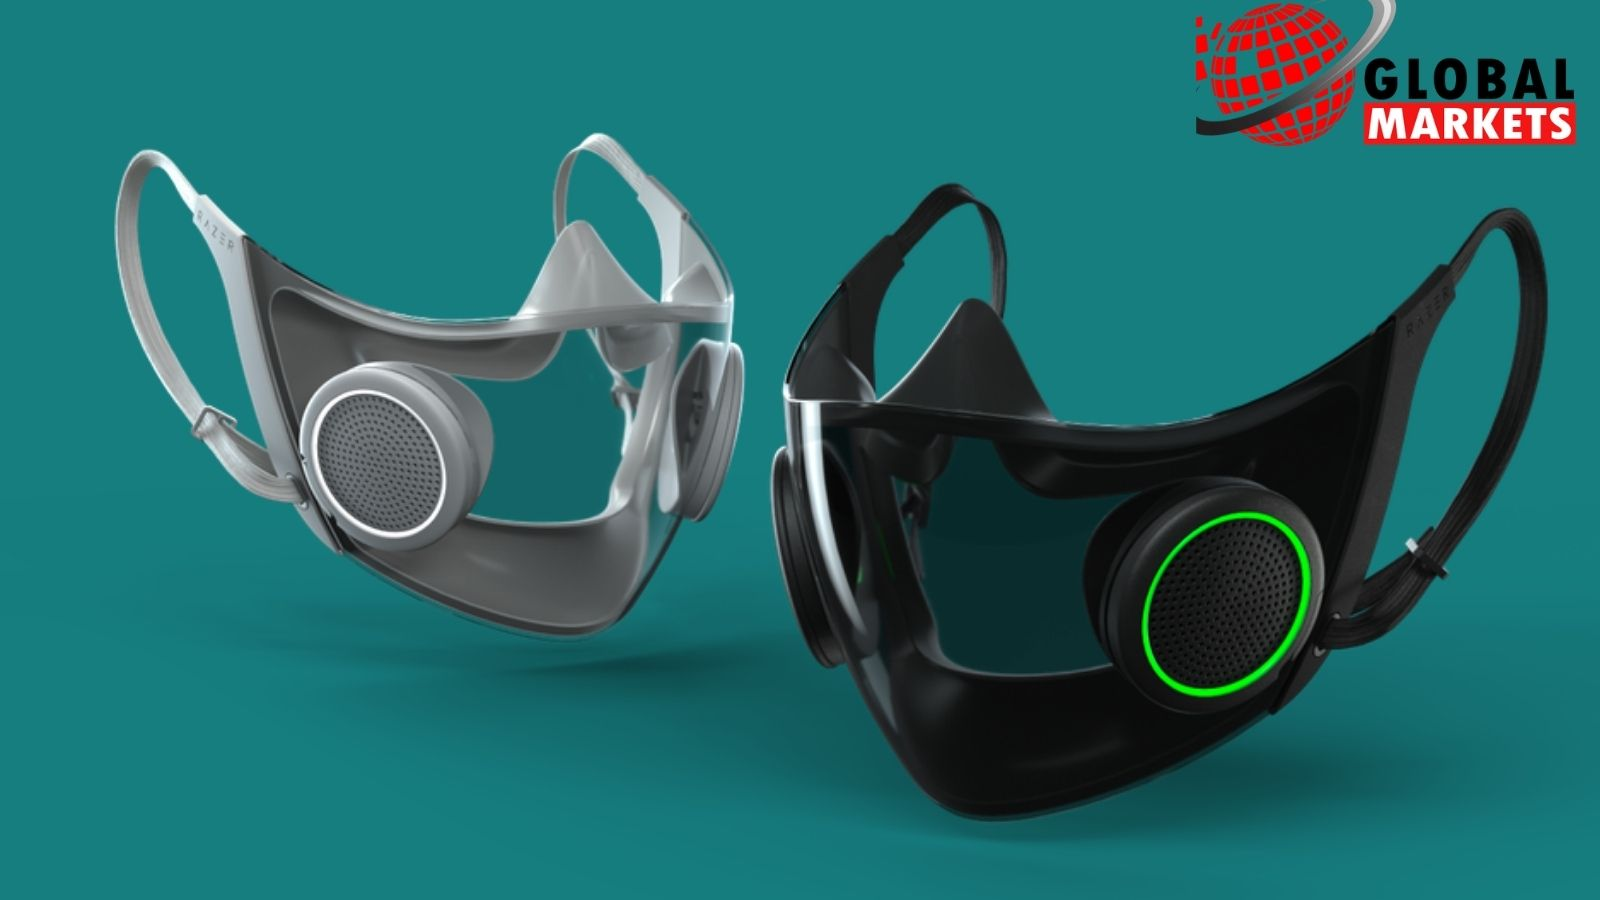 Razer has created athinkingN95masks with RGB and voice projection.